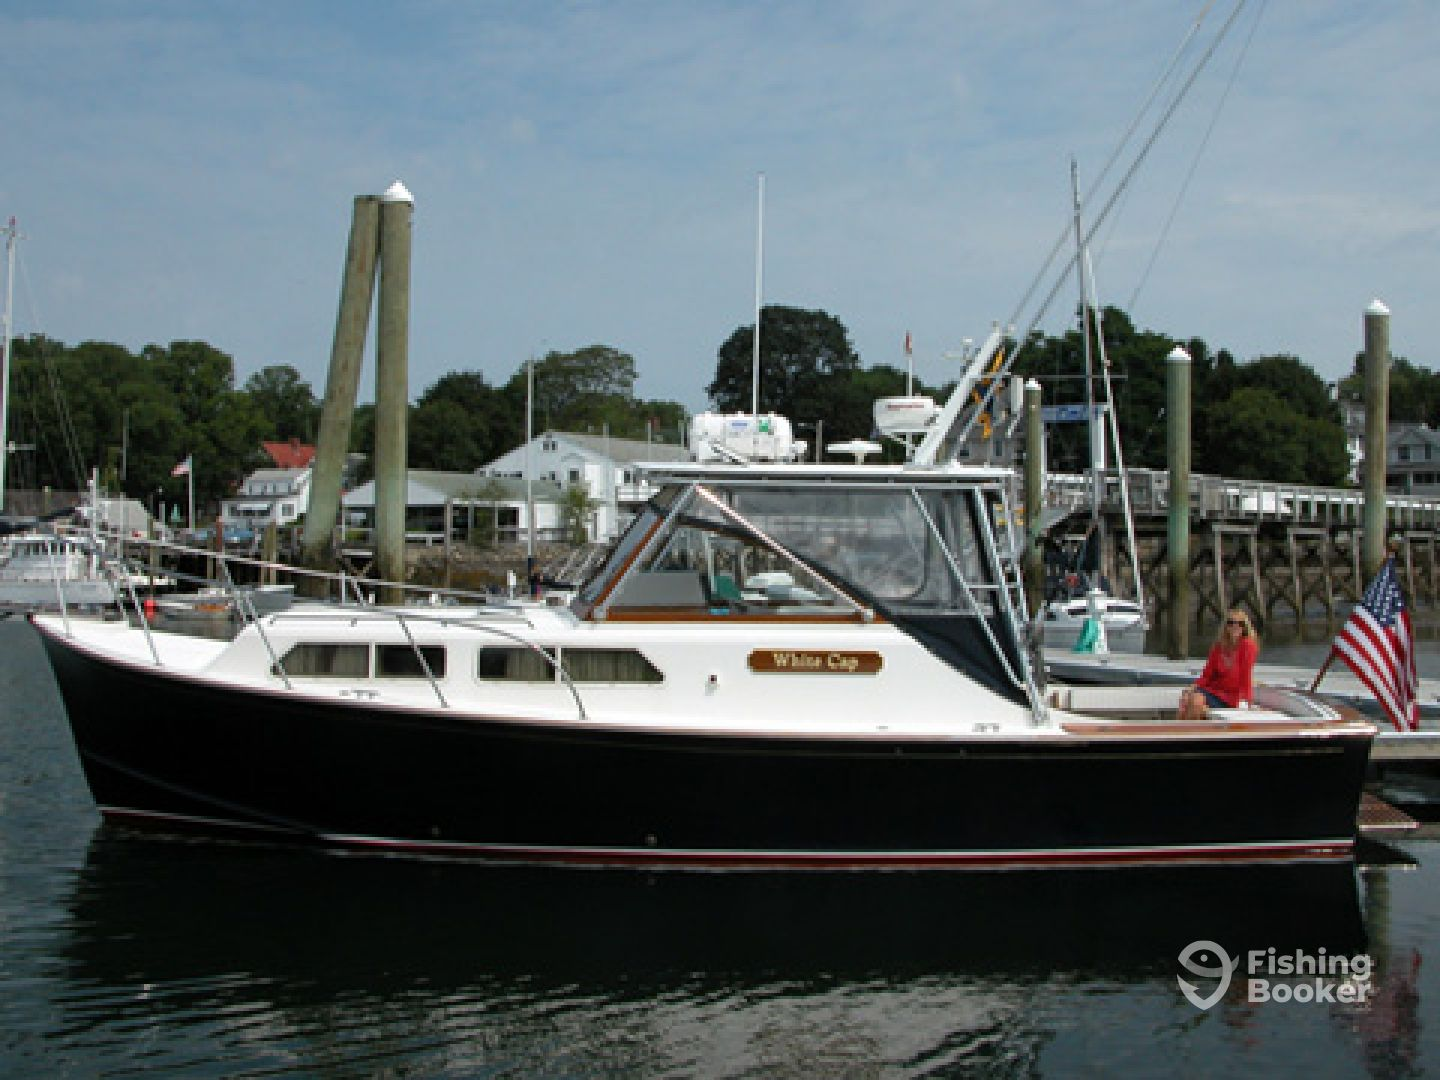 White cap charters scituate ma fishingbooker for Fishing charters plymouth ma